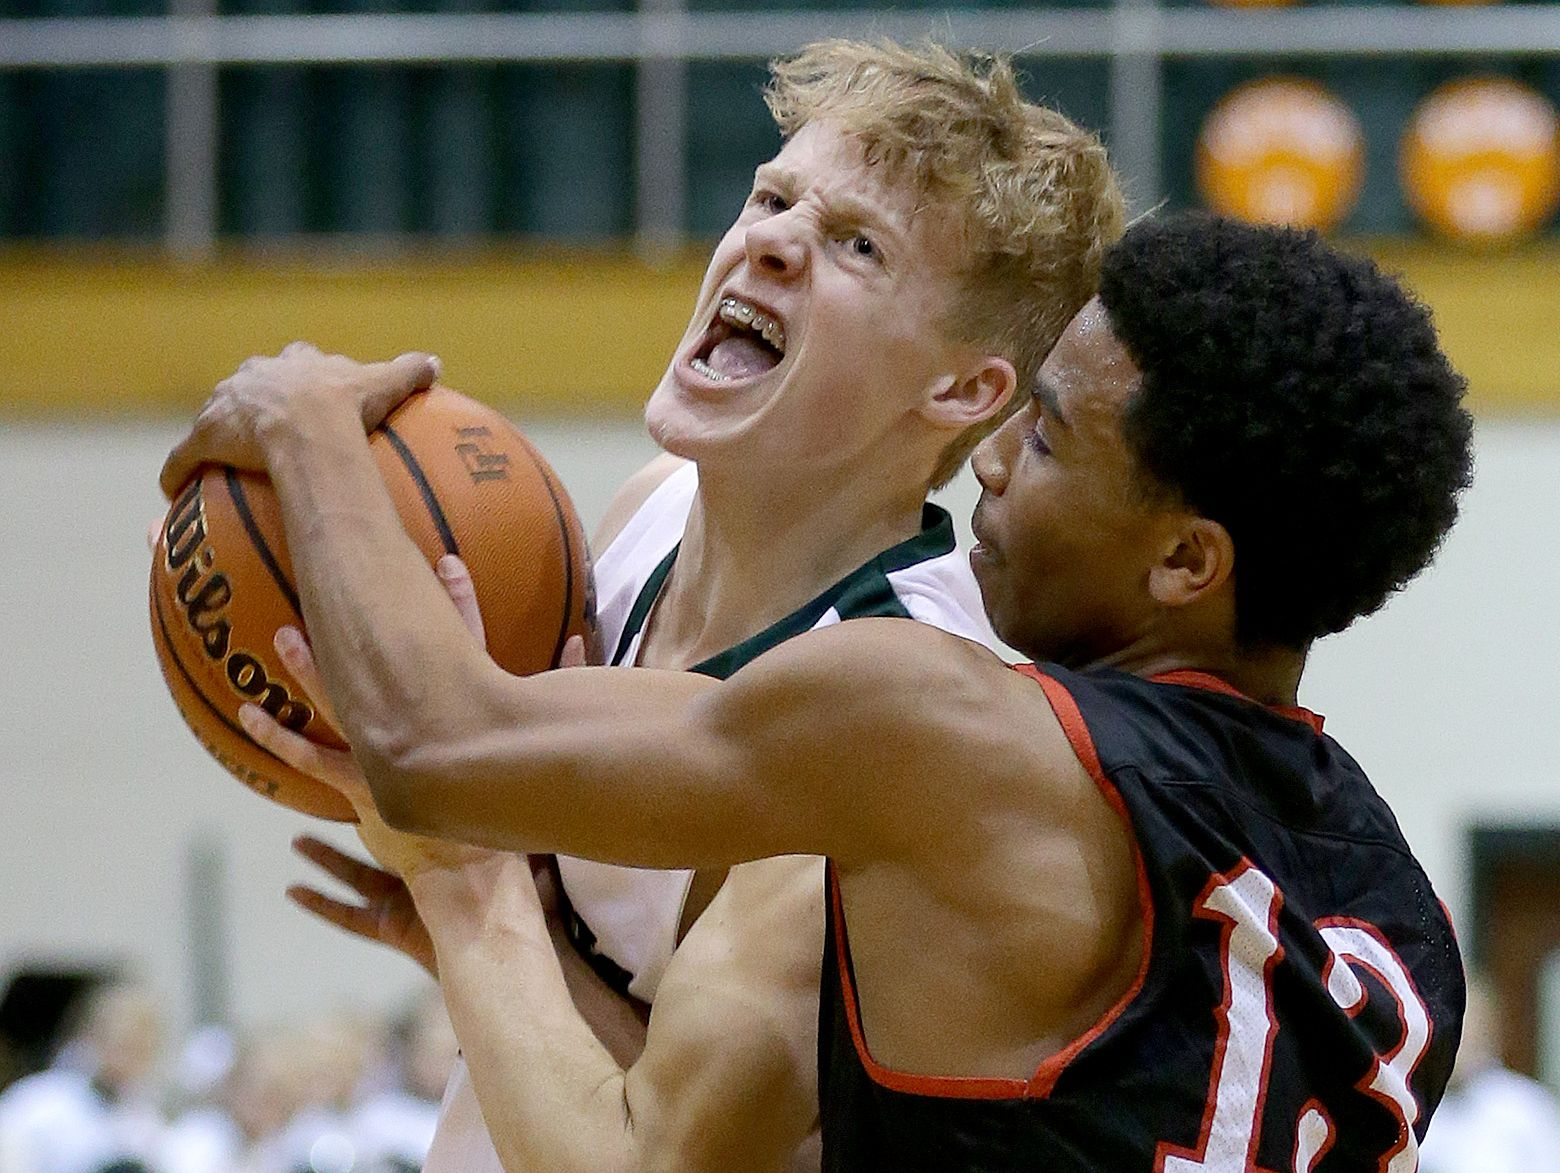 Pendleton Heights Arabians Karsten Windlan (10) is fouled by North Central Panthers Caleb Pack (13) in the first half of their game Tuesday, February 21, 2017, evening at Pendleton Heights High School.